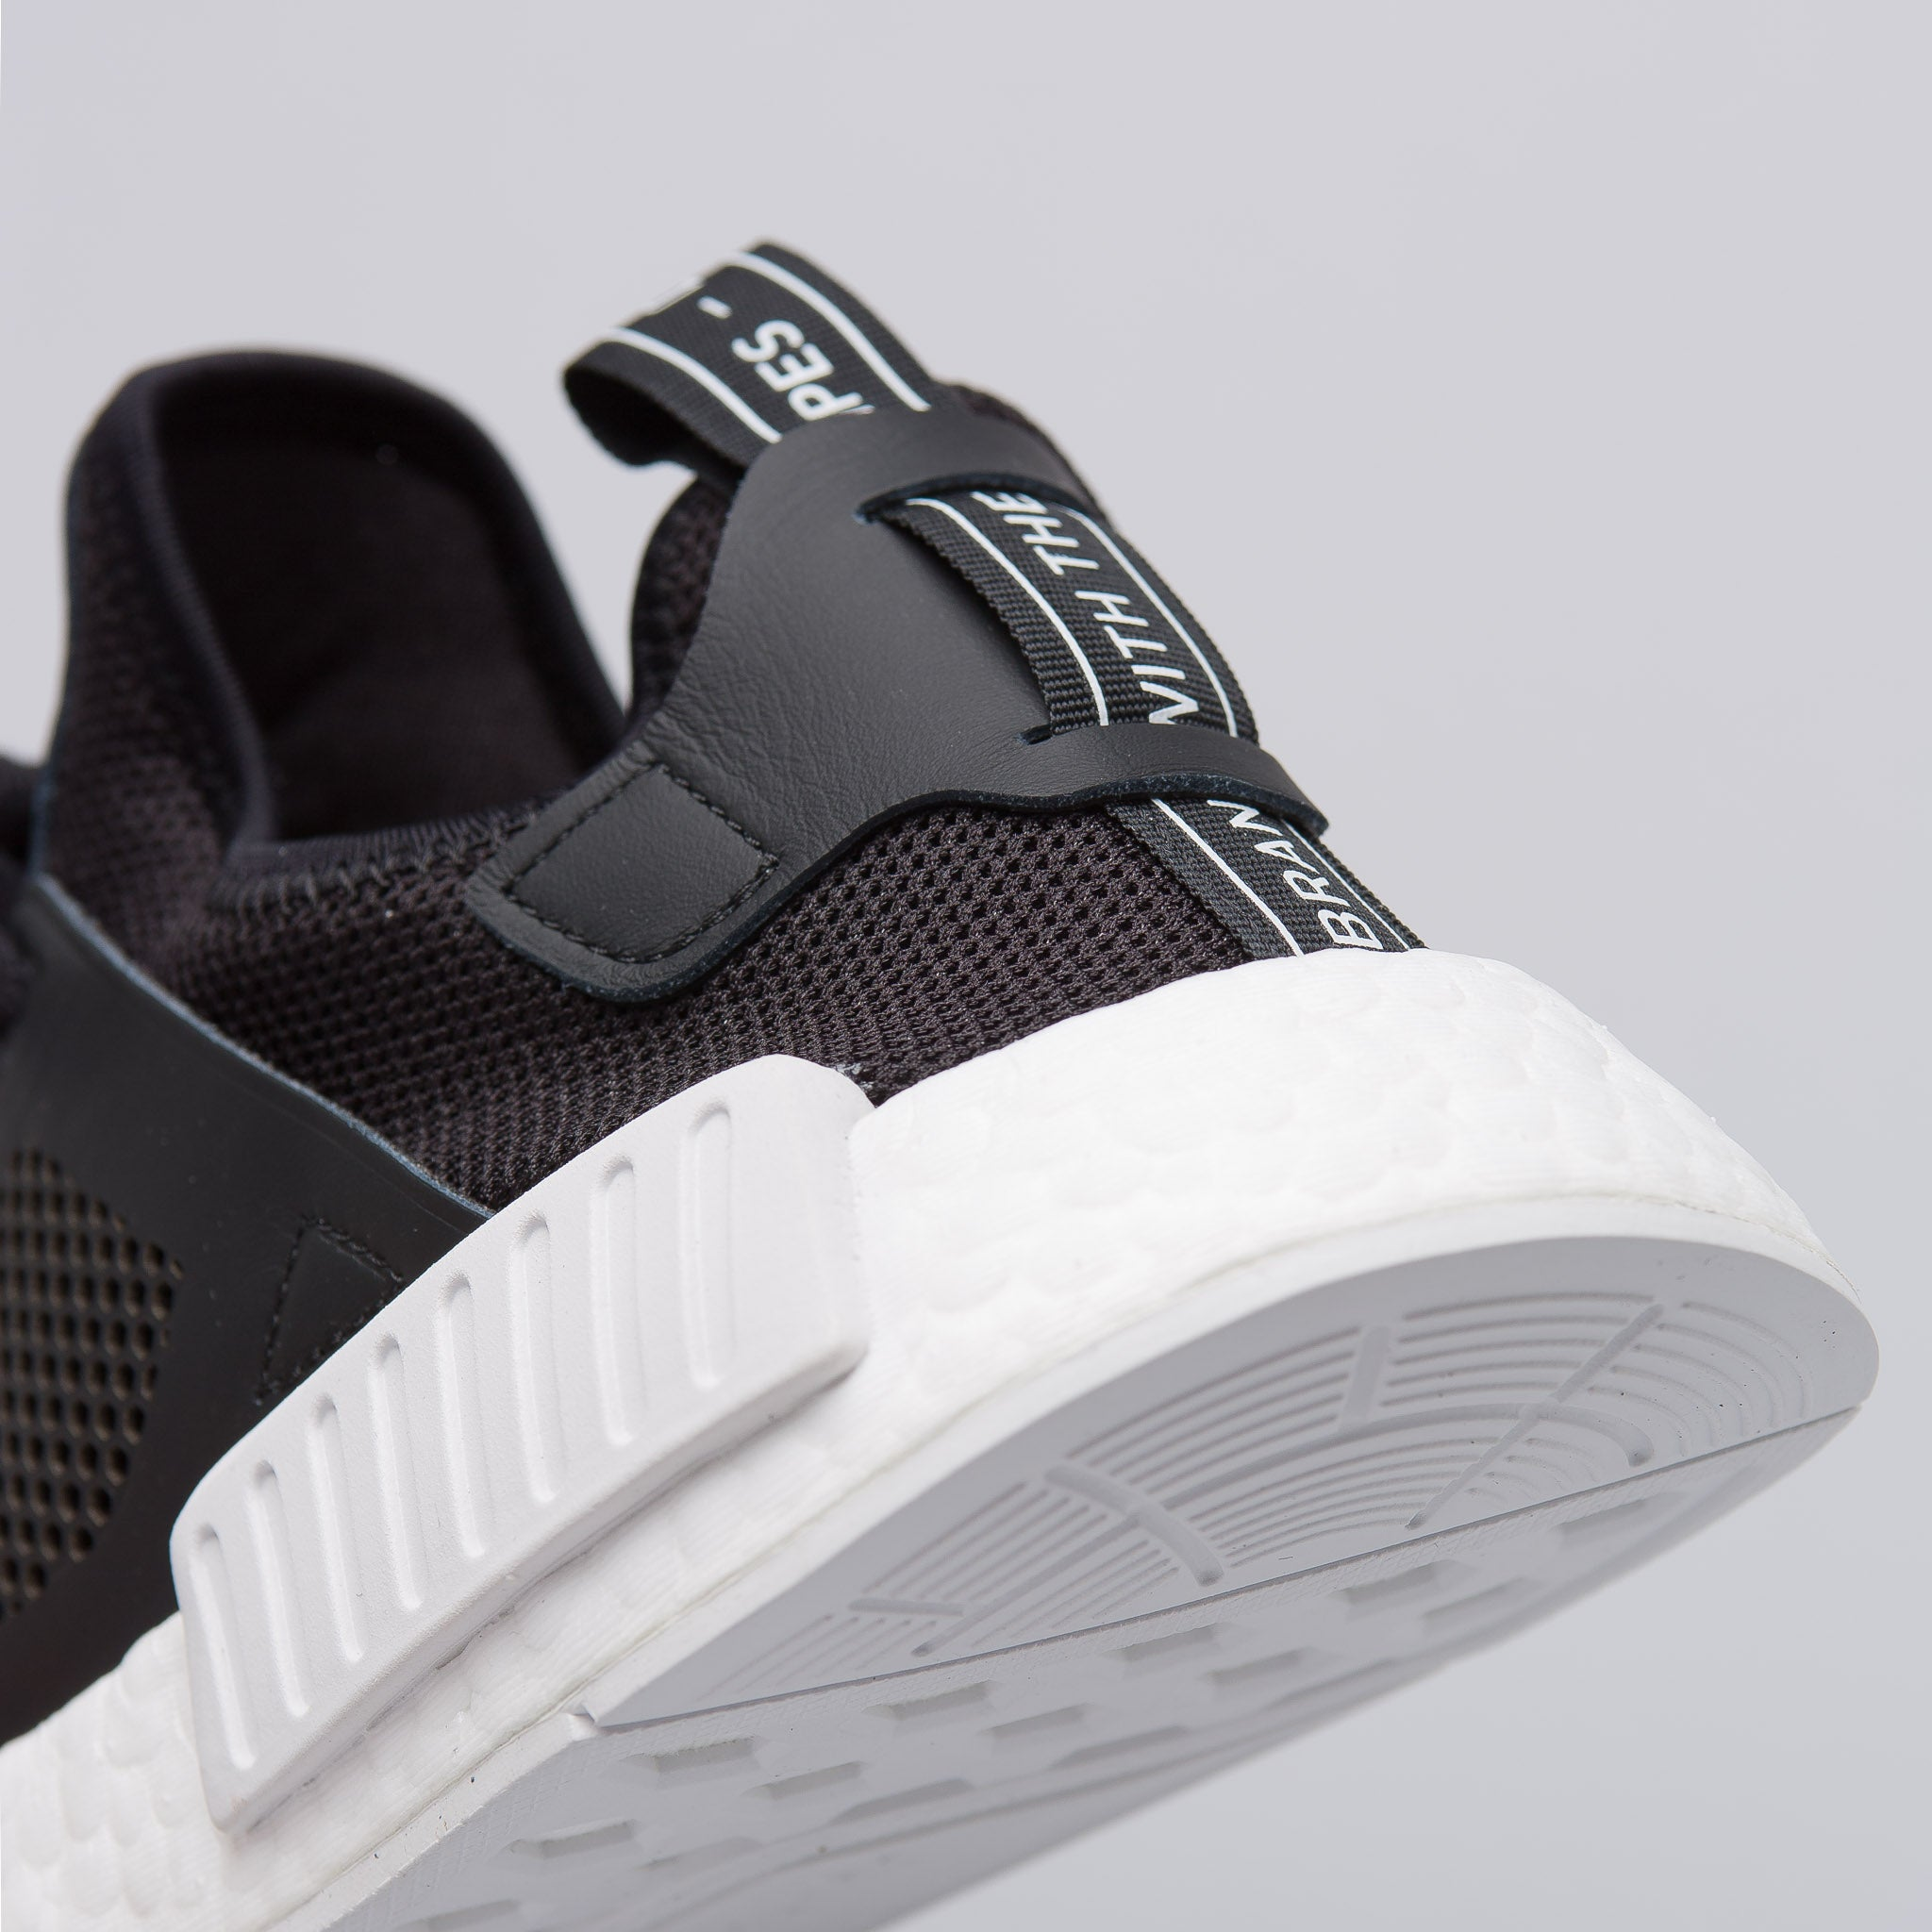 Adidas NMD XR1 Duck Camo Core Black Core Black Running White